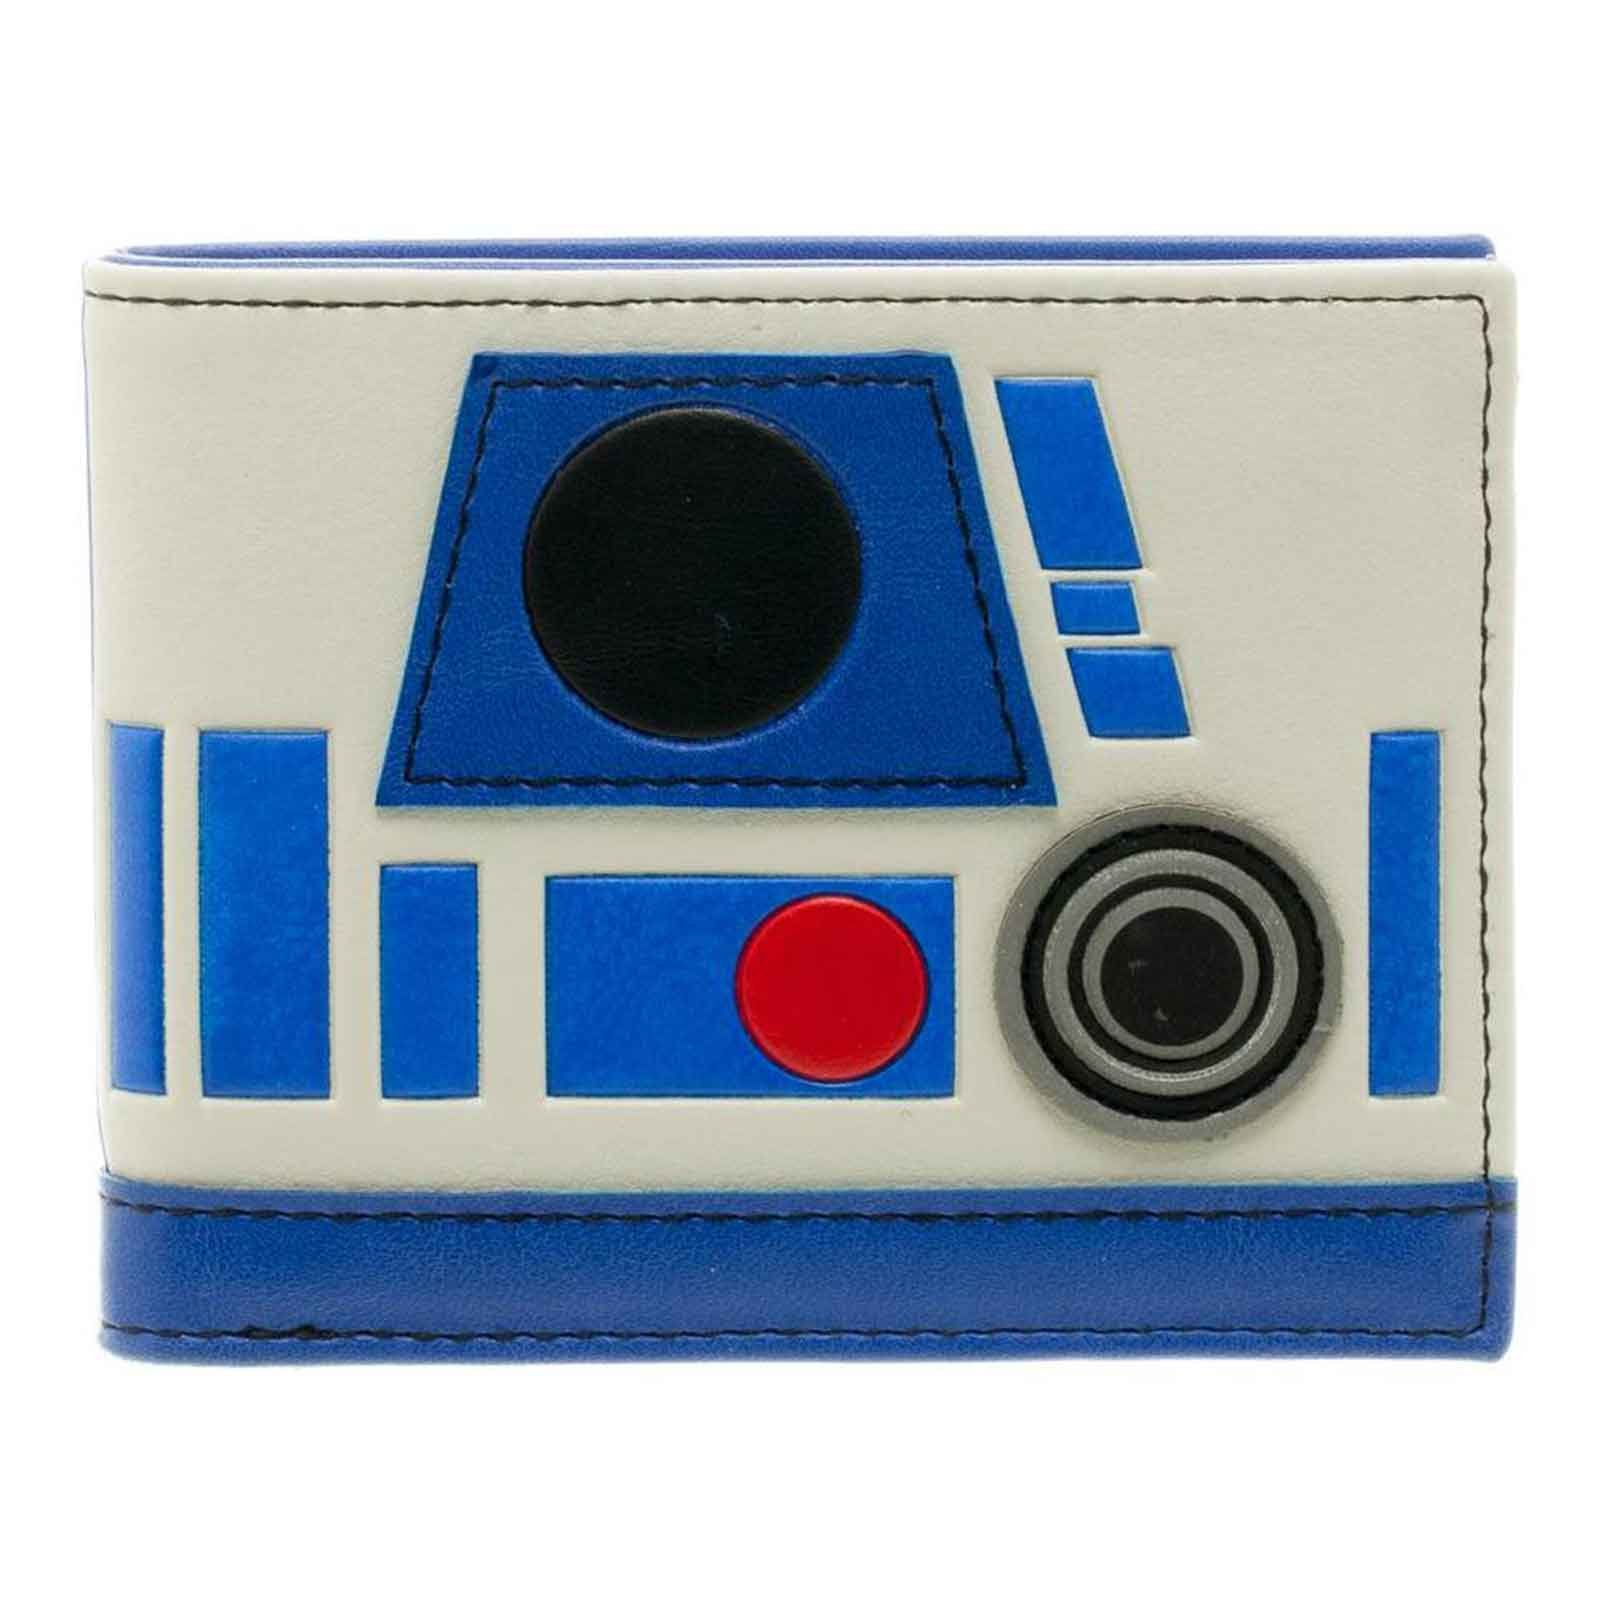 Star Wars Wallet R2d2 Helmet Logo Last Jedi Official Bifold by Star Wars Merch